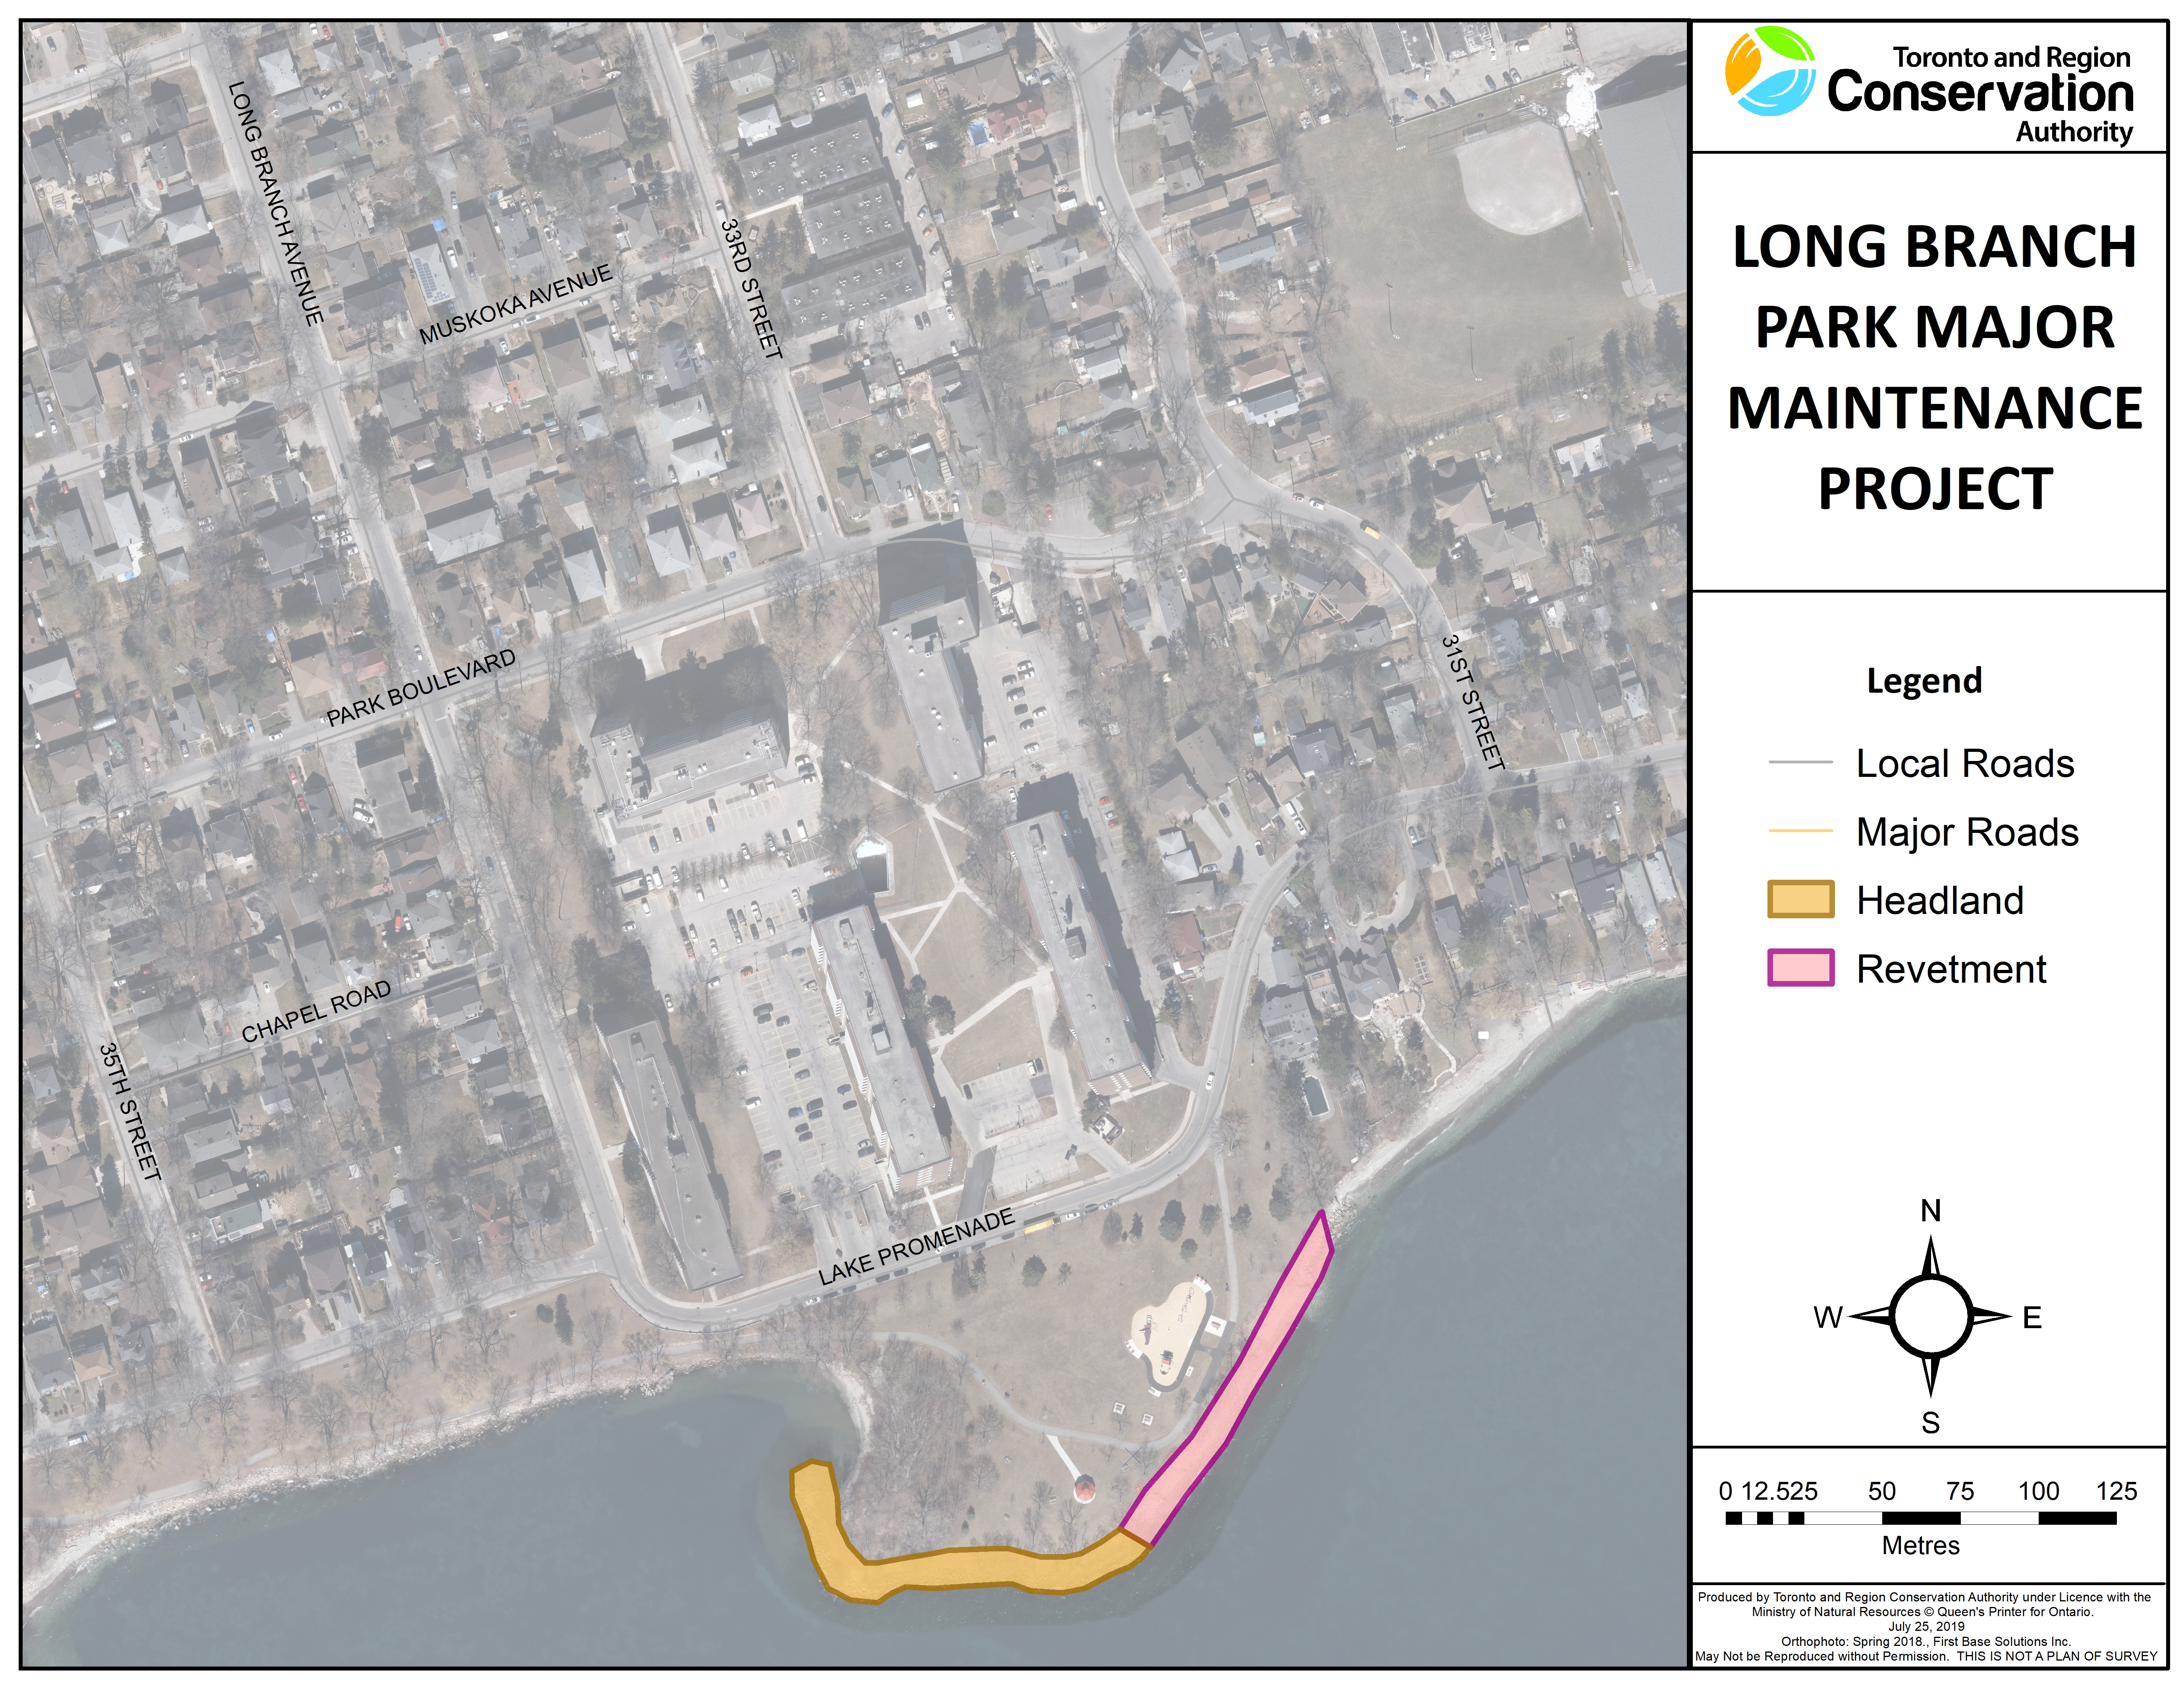 Project area including location of the armourstone headland and revetment at Long Branch Park. Source: TRCA, 2019.